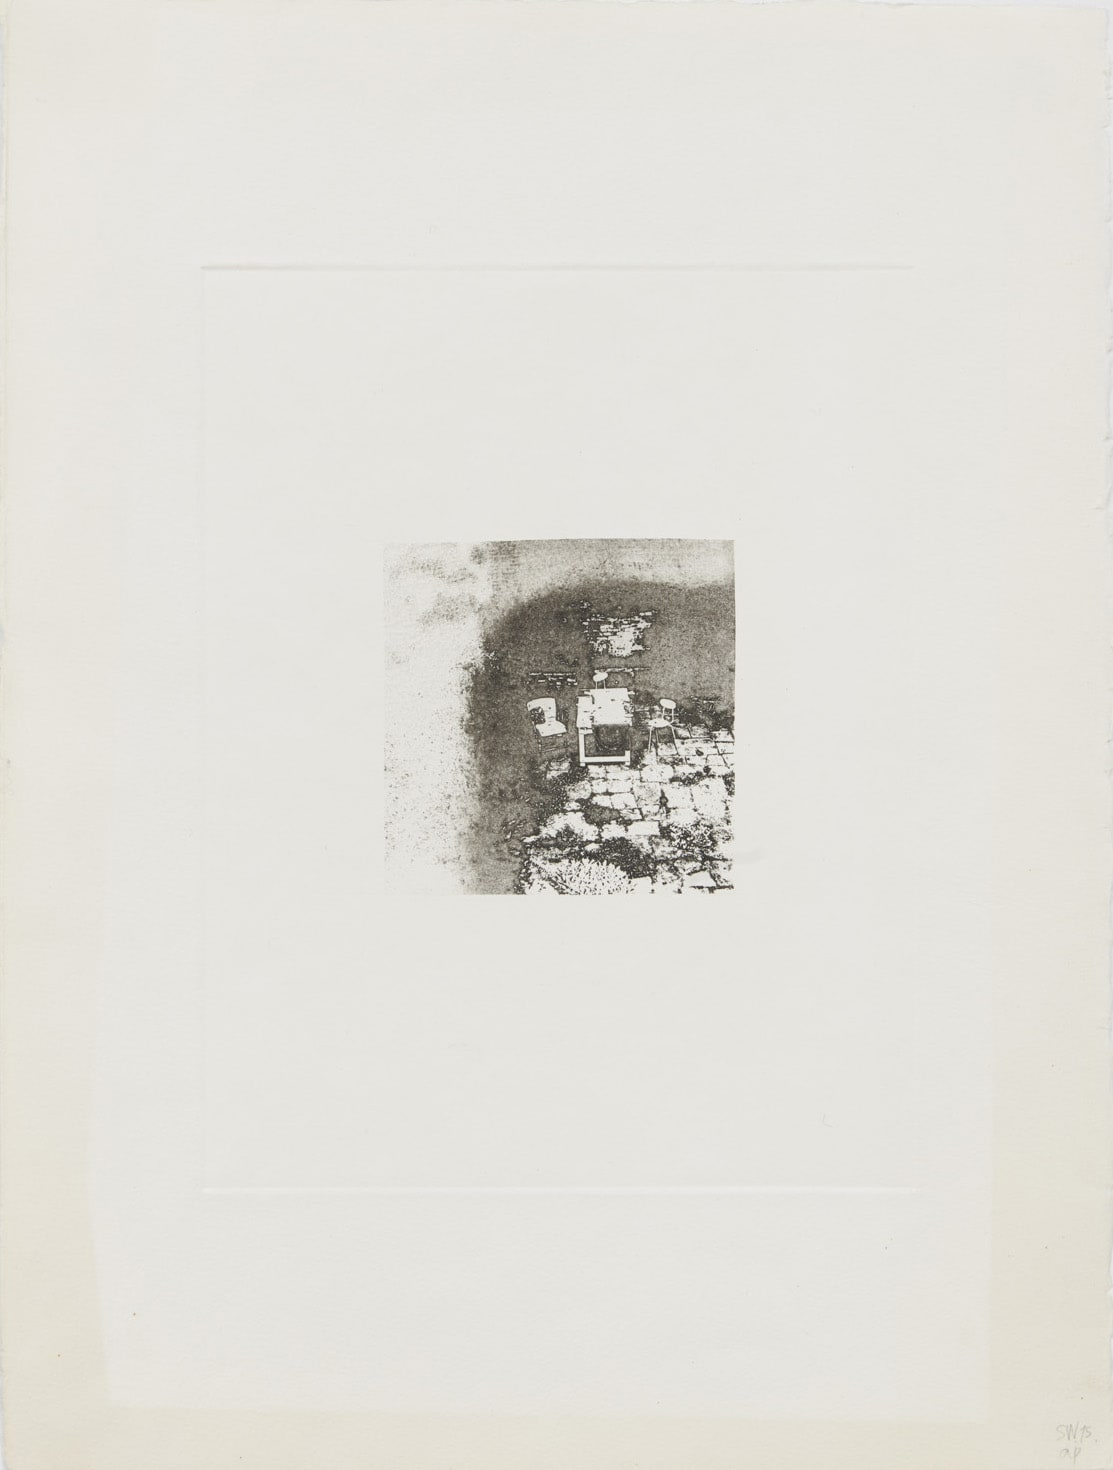 Shelagh WAKELY Another person's garden, 1975 Etching 39.5 x 29.7 cm